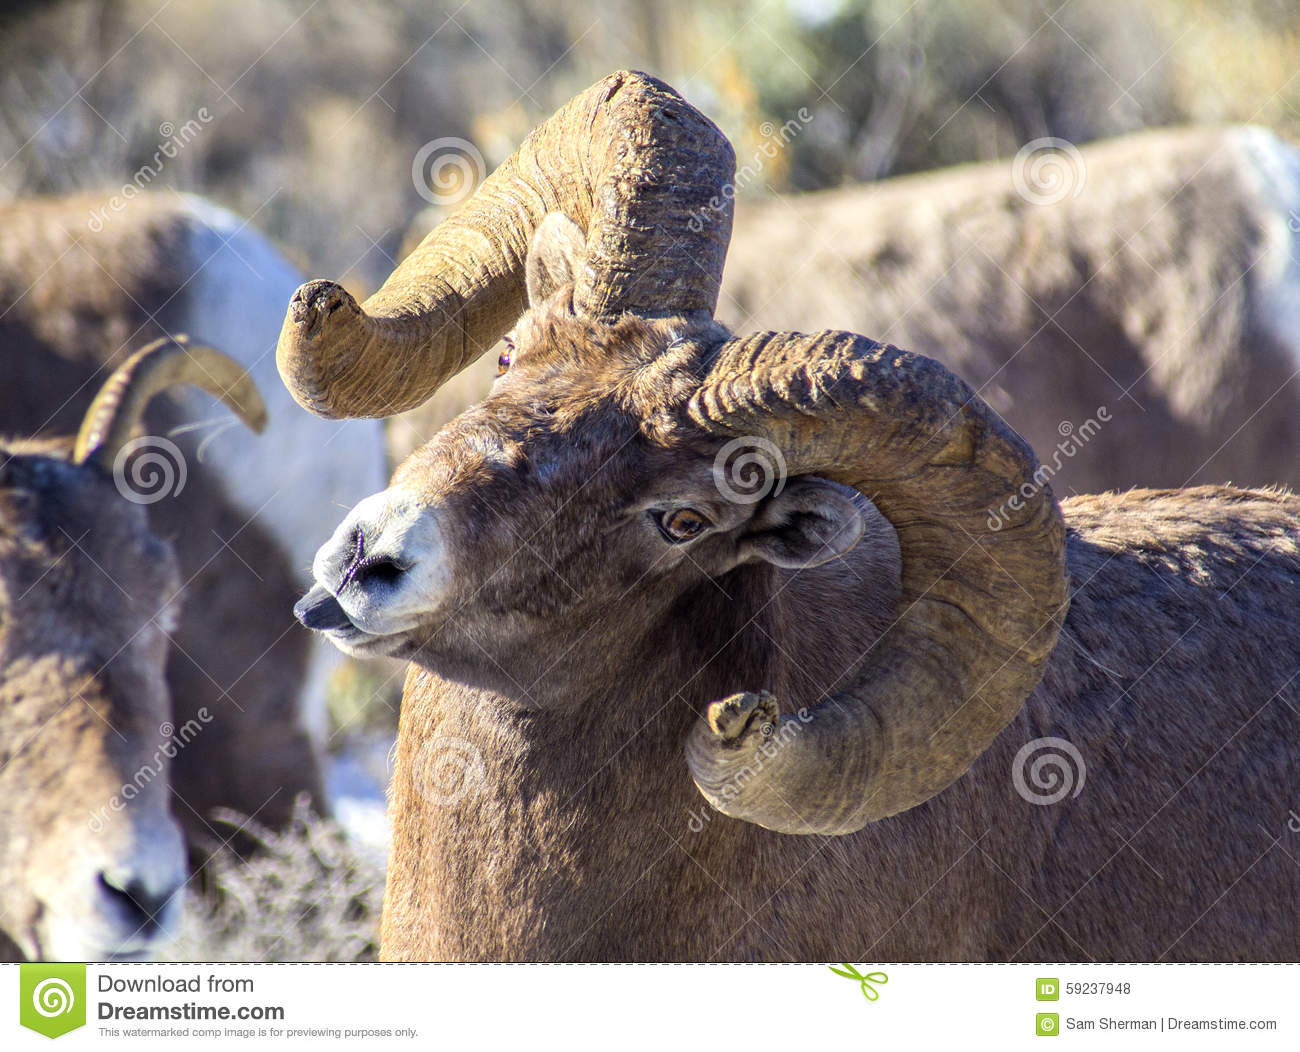 Ovejas Ram Sticking Tongue Out del Big Horn